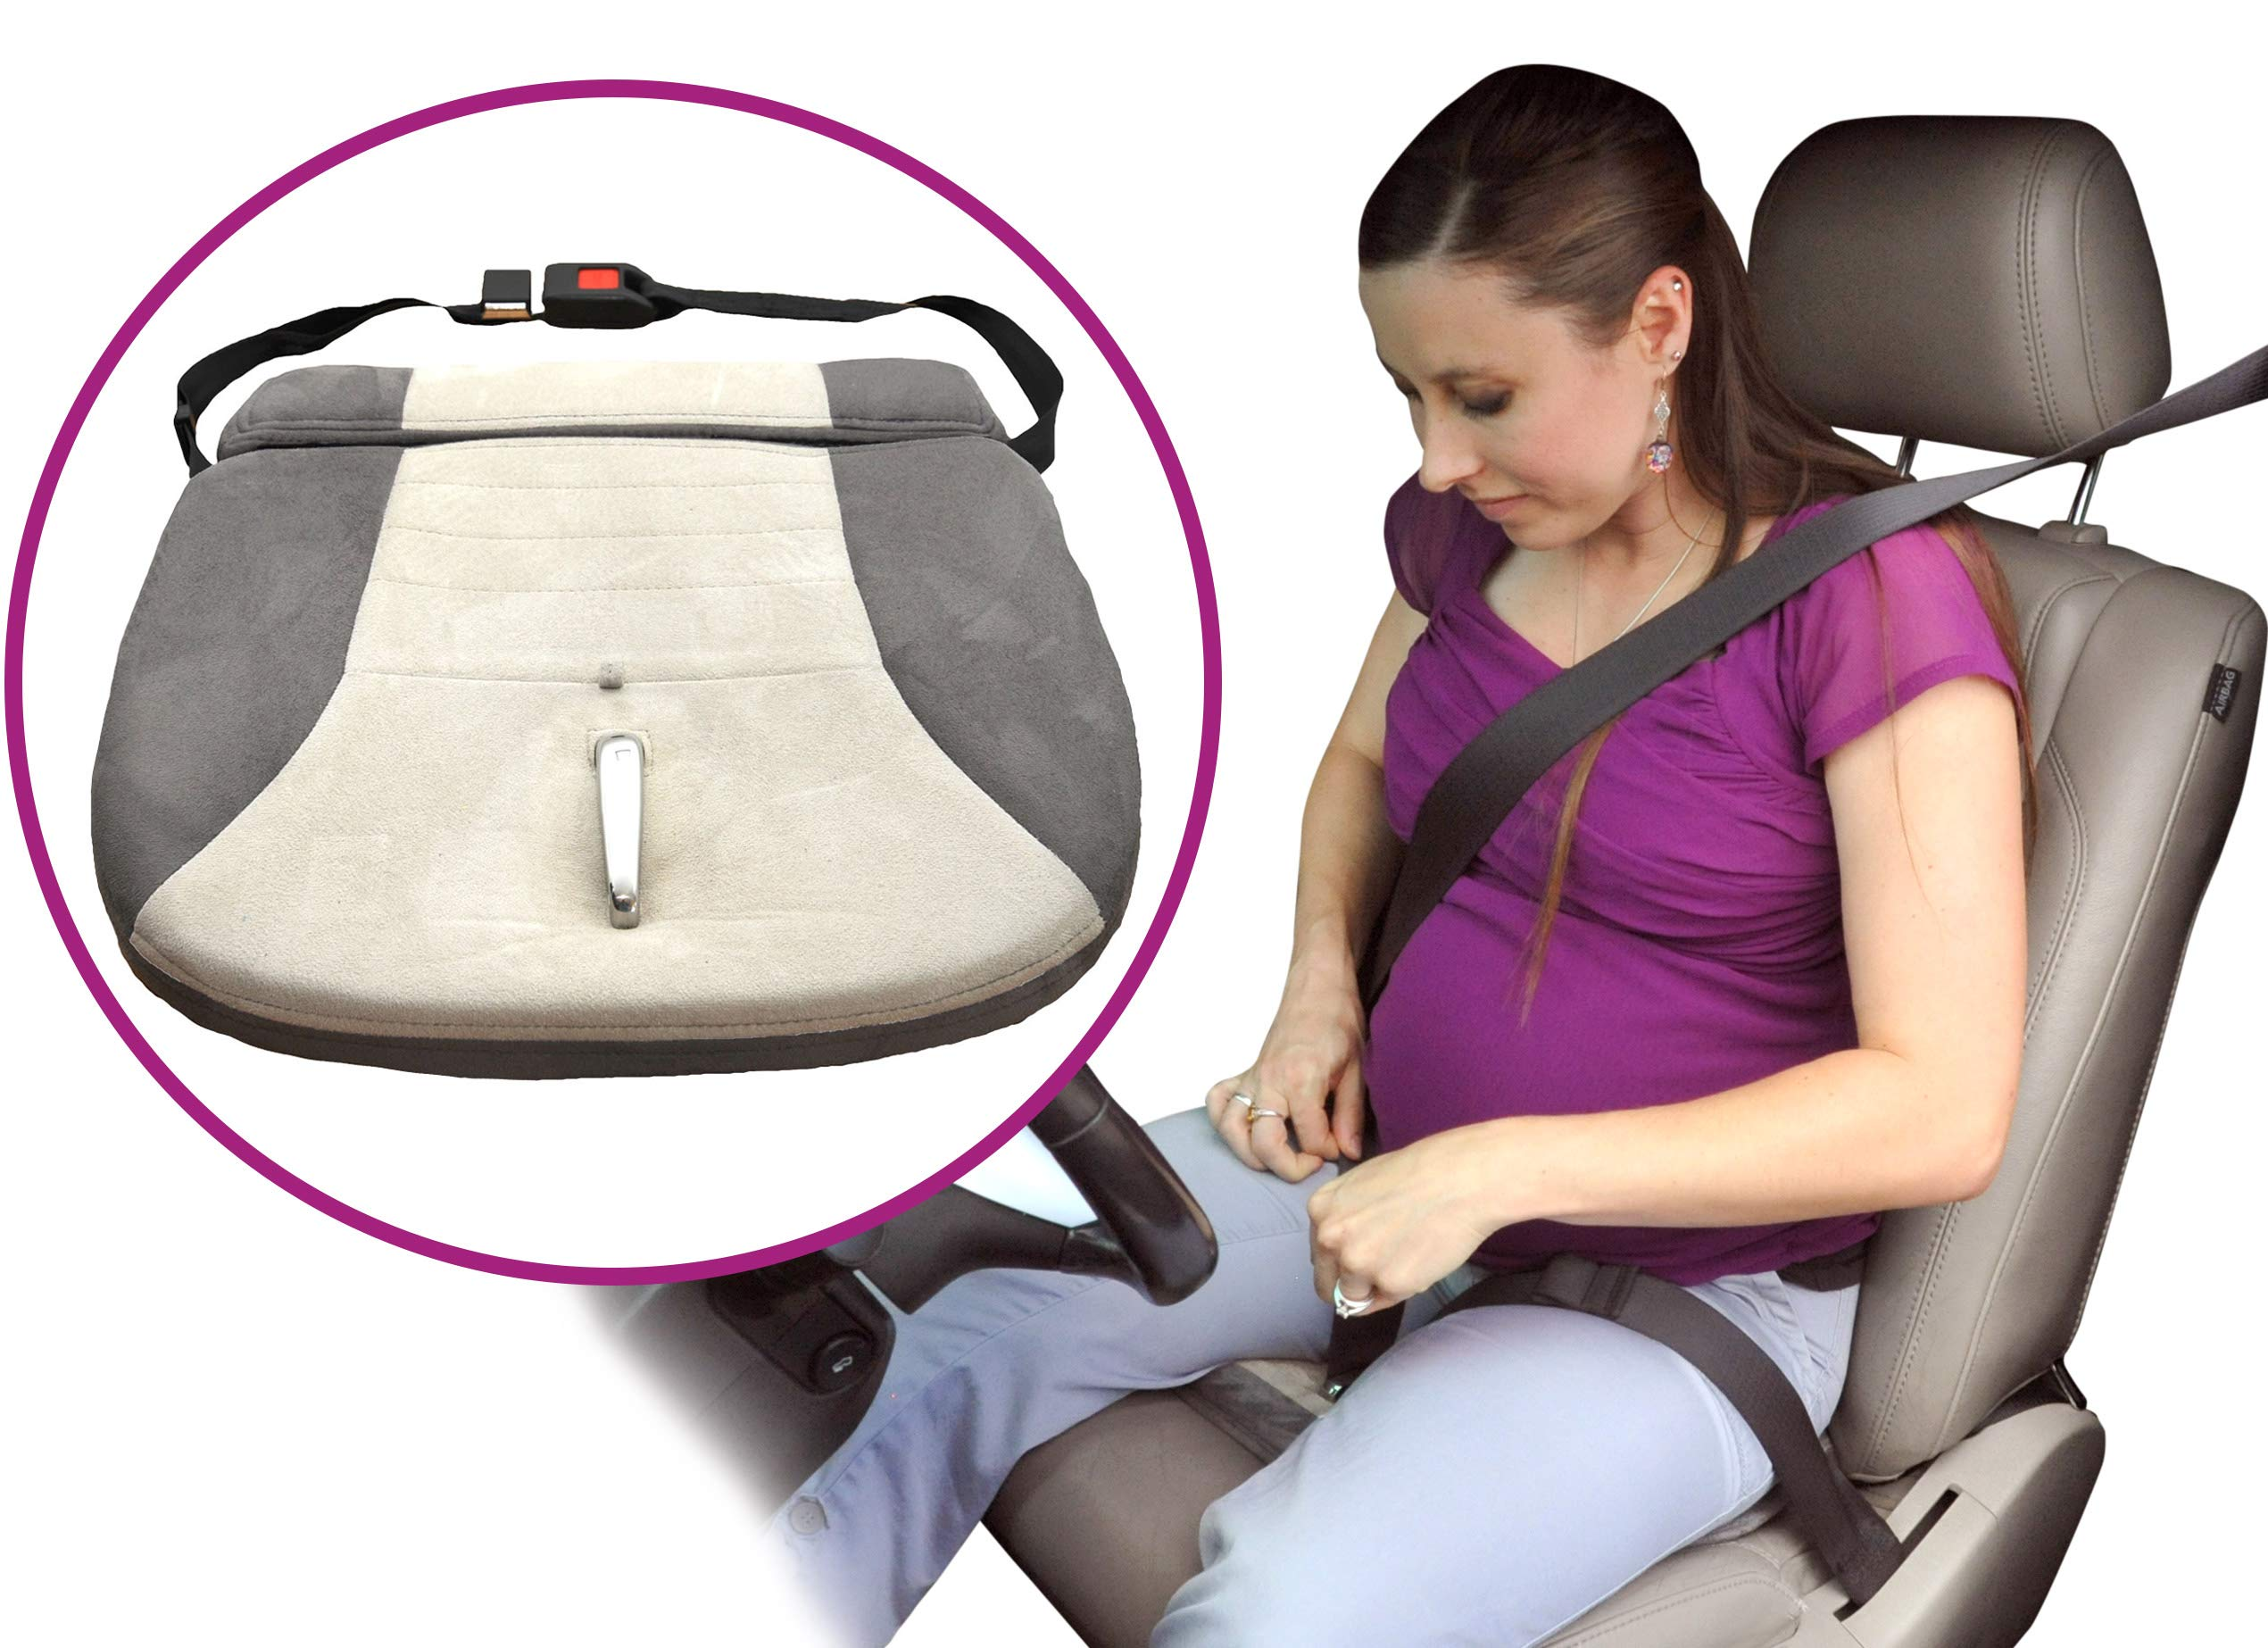 Award-winning Tummy Shield, Only Pregnancy Seat Belt Adjuster Crash Tested for Increased Safety and Comfort, a Must-Have To Protect Your Unborn Baby